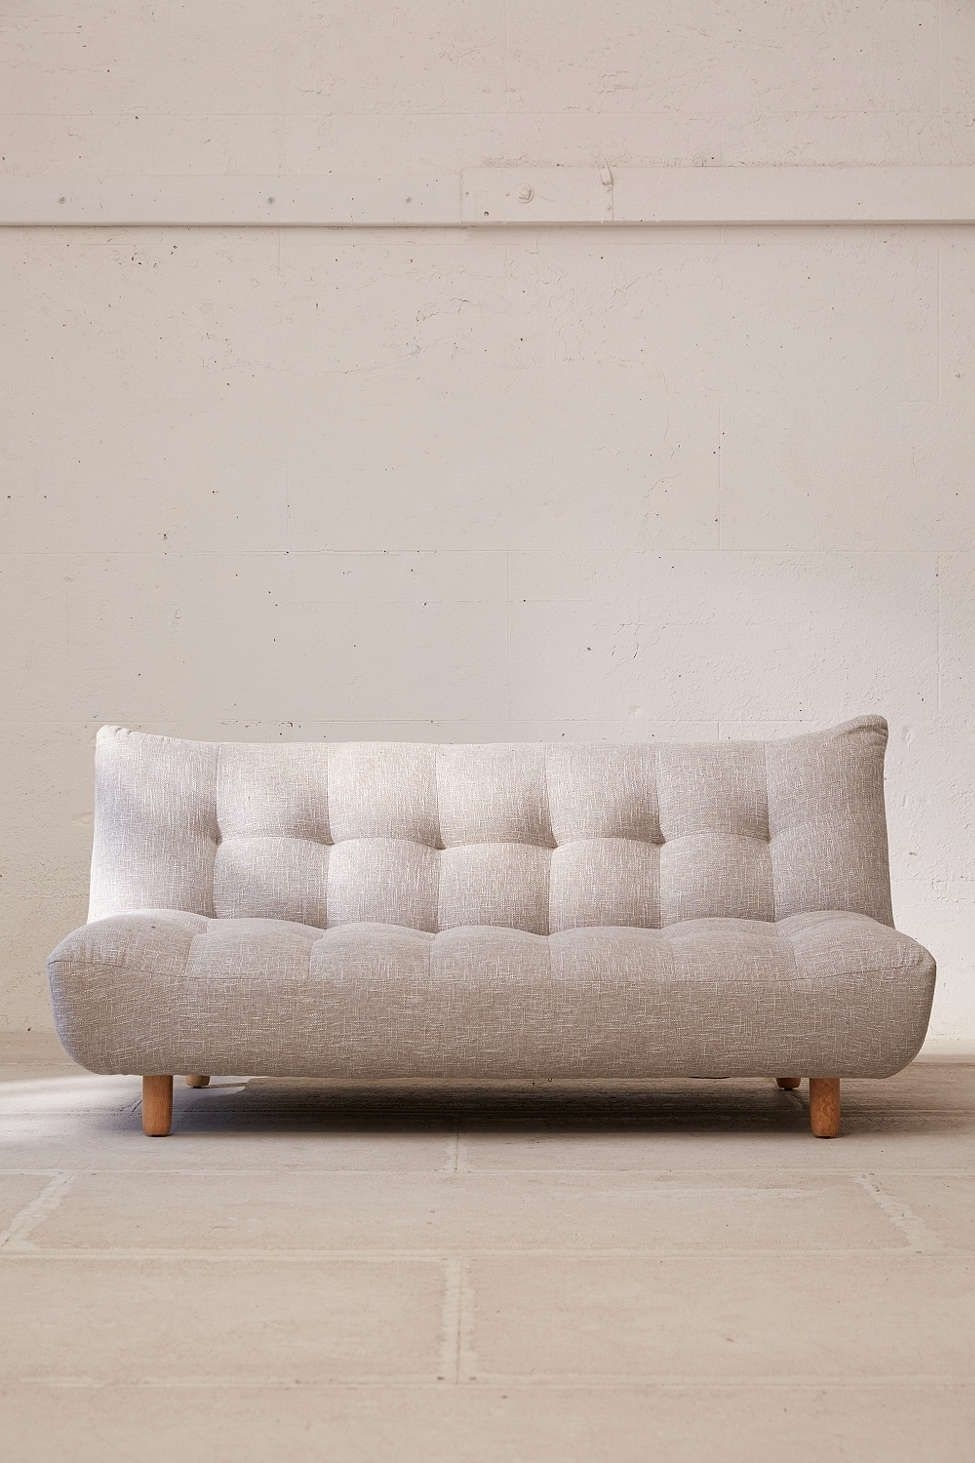 Winslow Armless Sleeper Sofa | Sleeper Sofas, Studio Apartment And Intended For Small Armless Sofas (View 10 of 10)